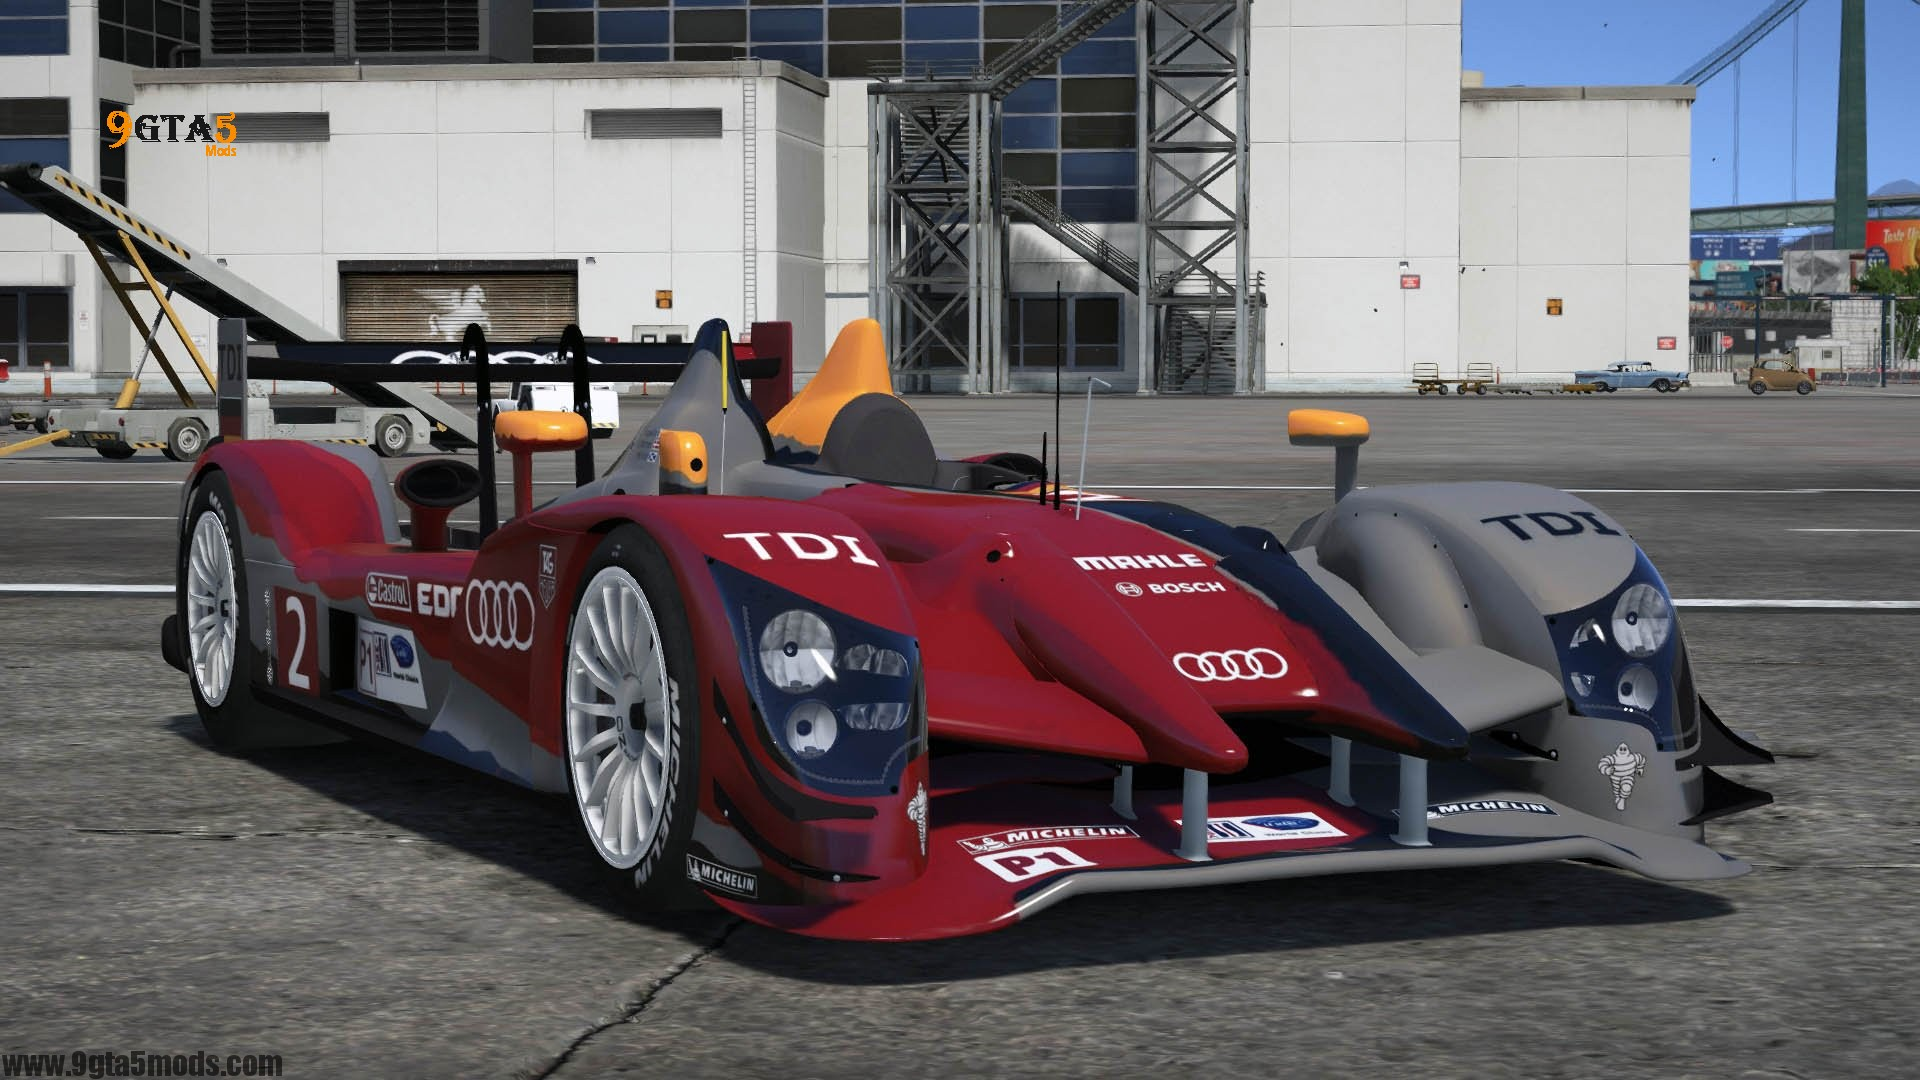 2011 Audi #2 Audi Sport Team Joest R15++ TDI | GTA 5 Vehicles